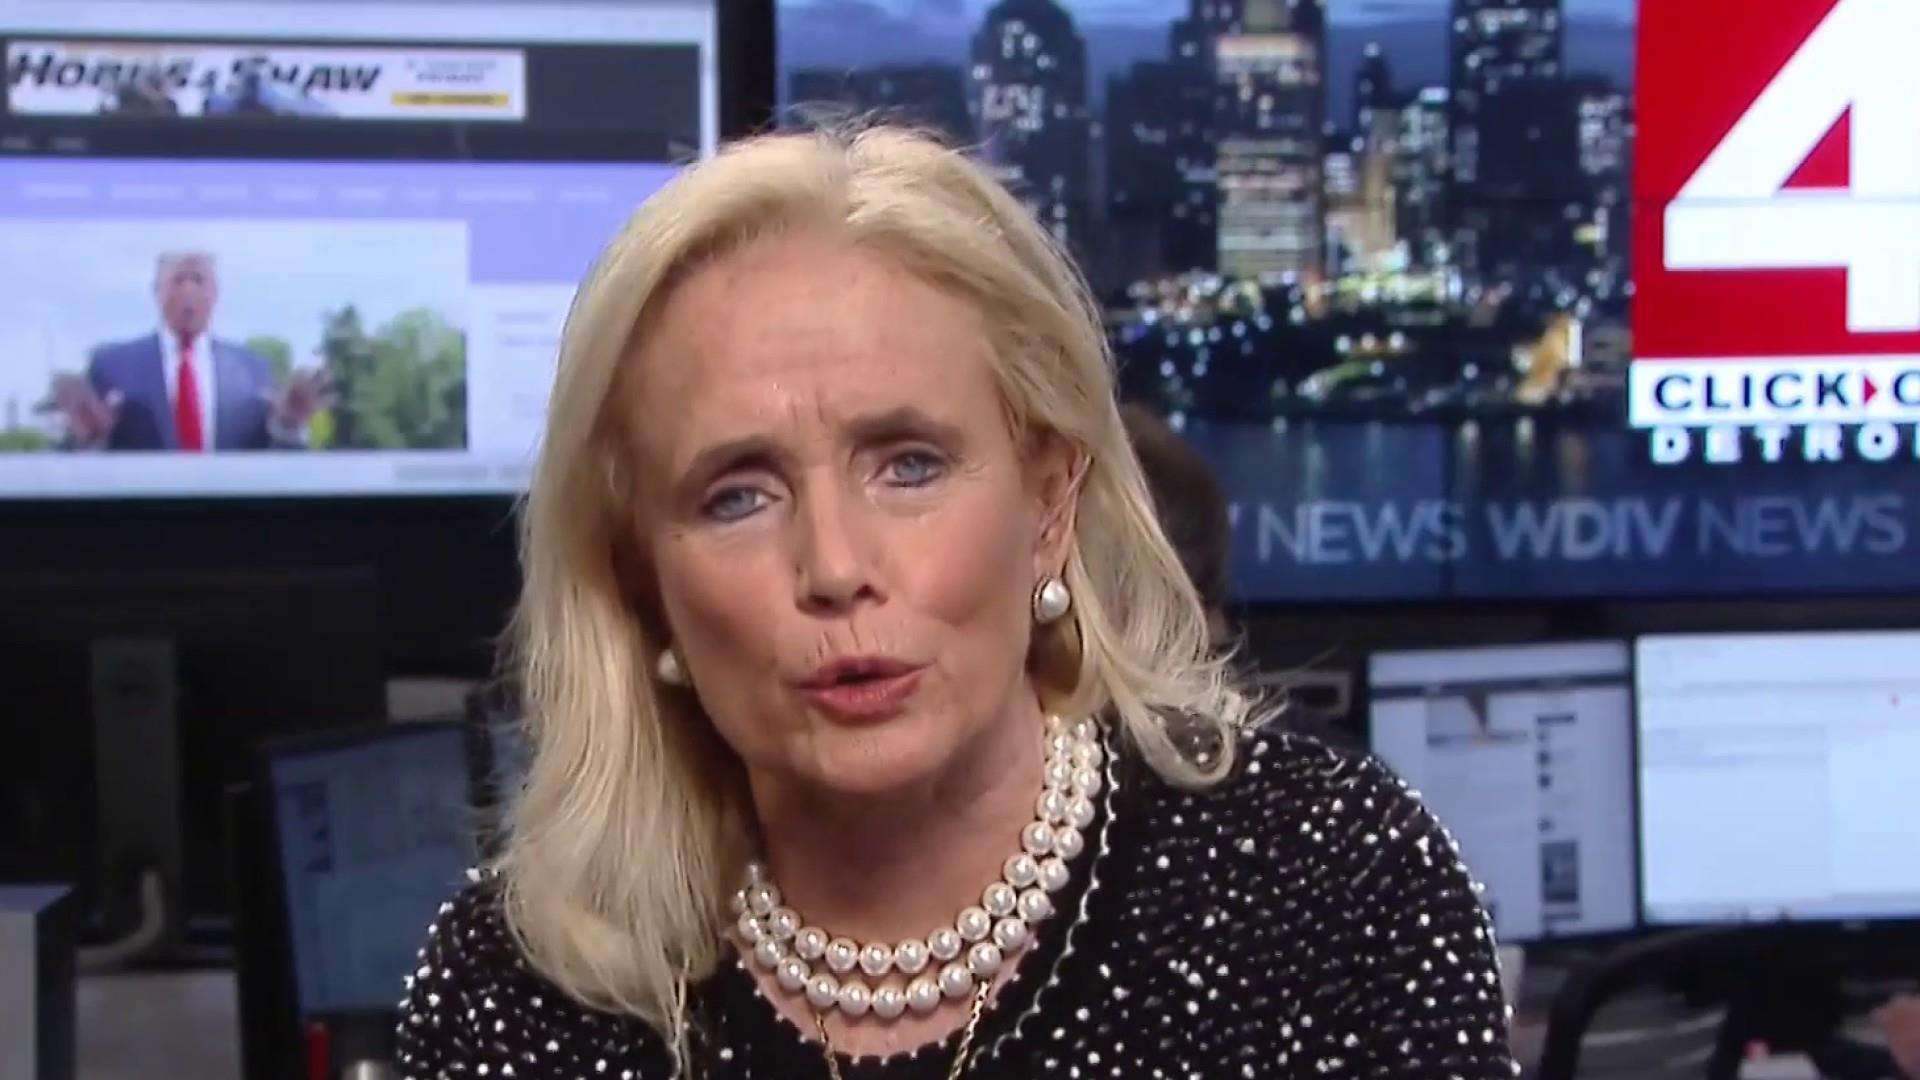 Rep. Dingell on impeachment: We have to 'stay focused on what people care about across America'